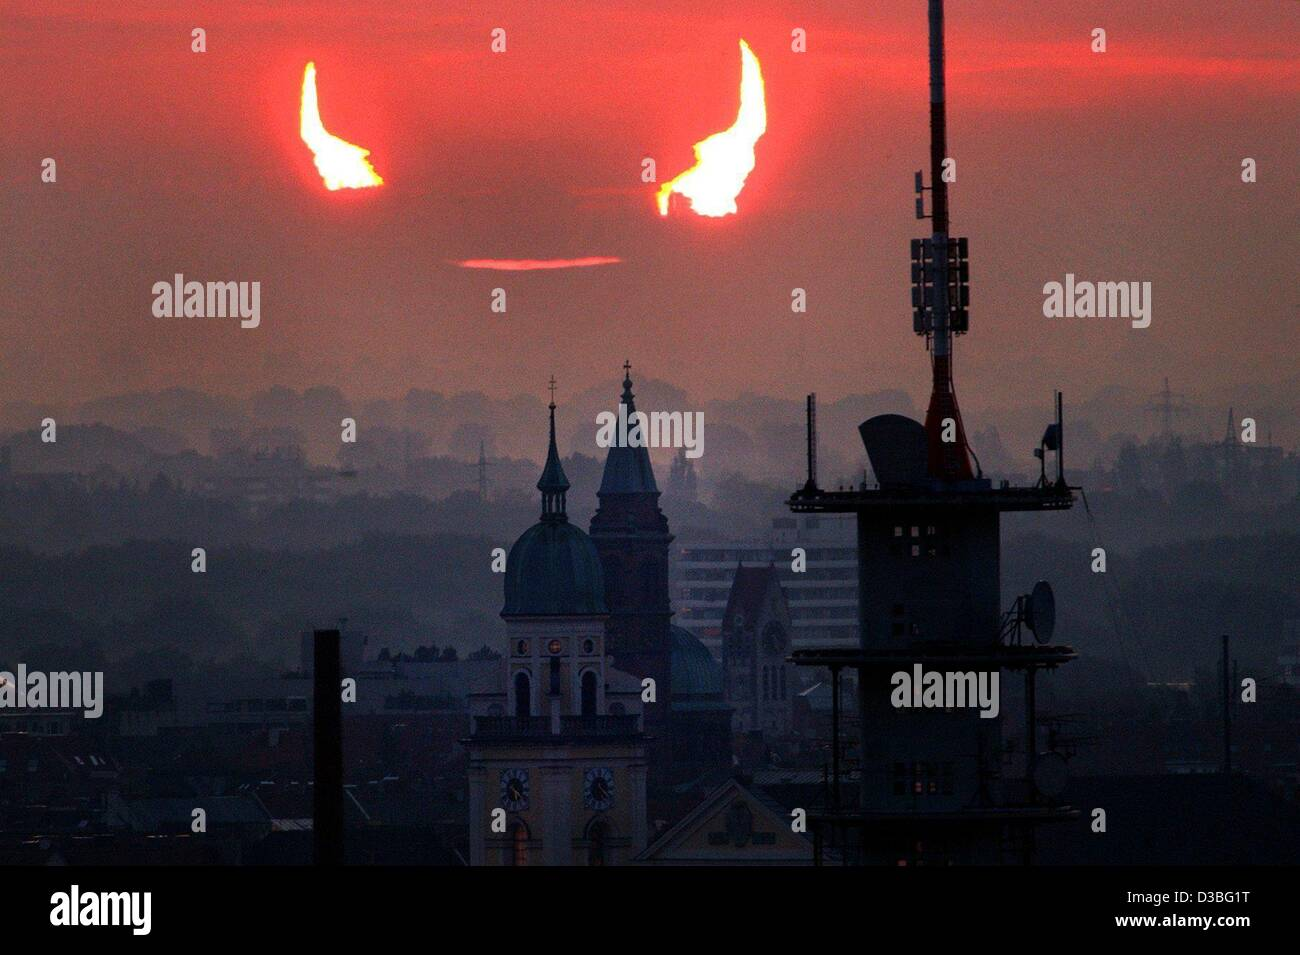 (dpa) - The sky turns red as the moon partially covers the rising sun around five o'clock in the morning in - Stock Image